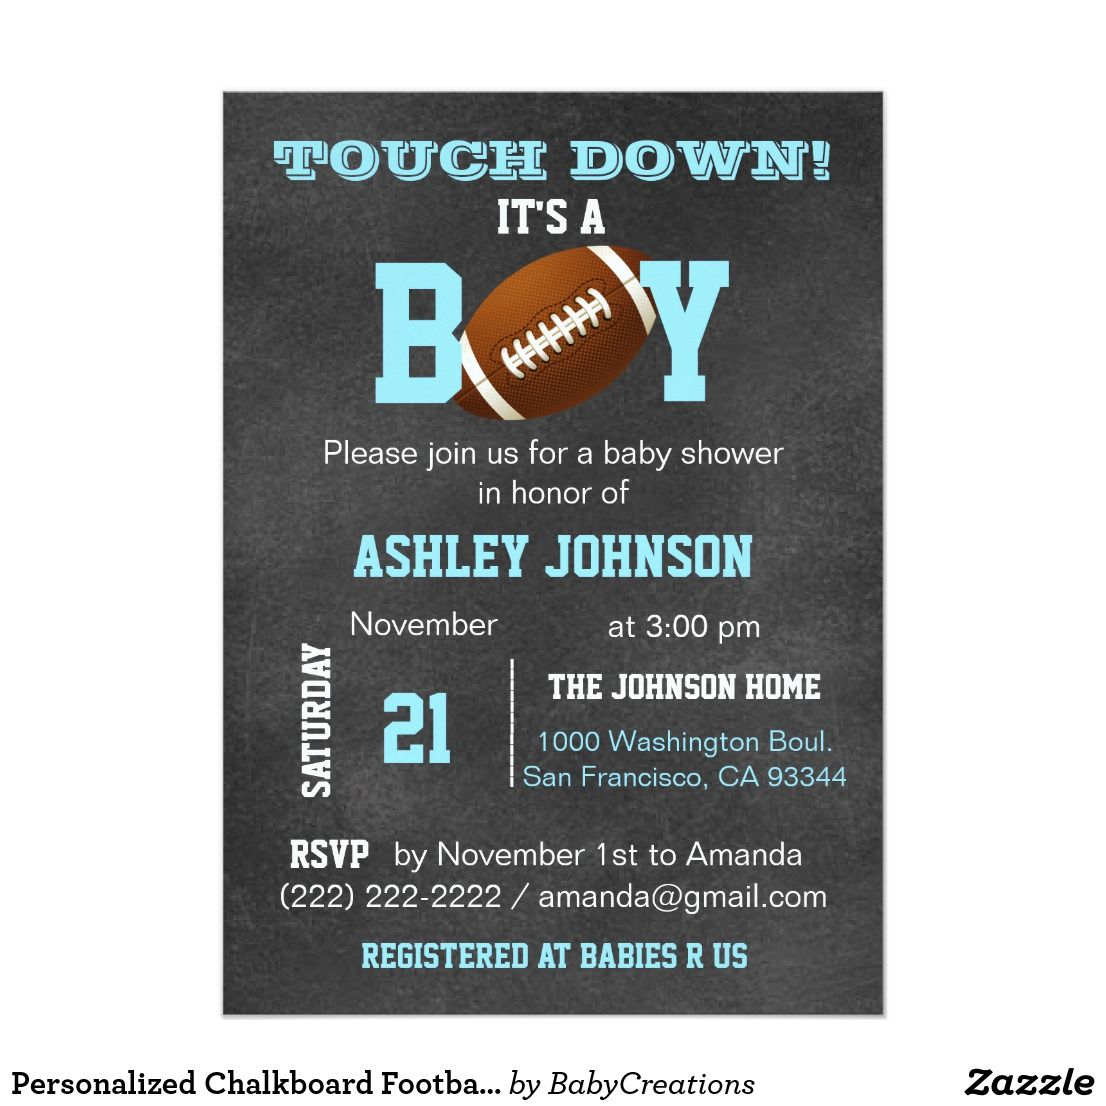 Personalized Chalkboard Football Theme Baby Shower Card | Football ...